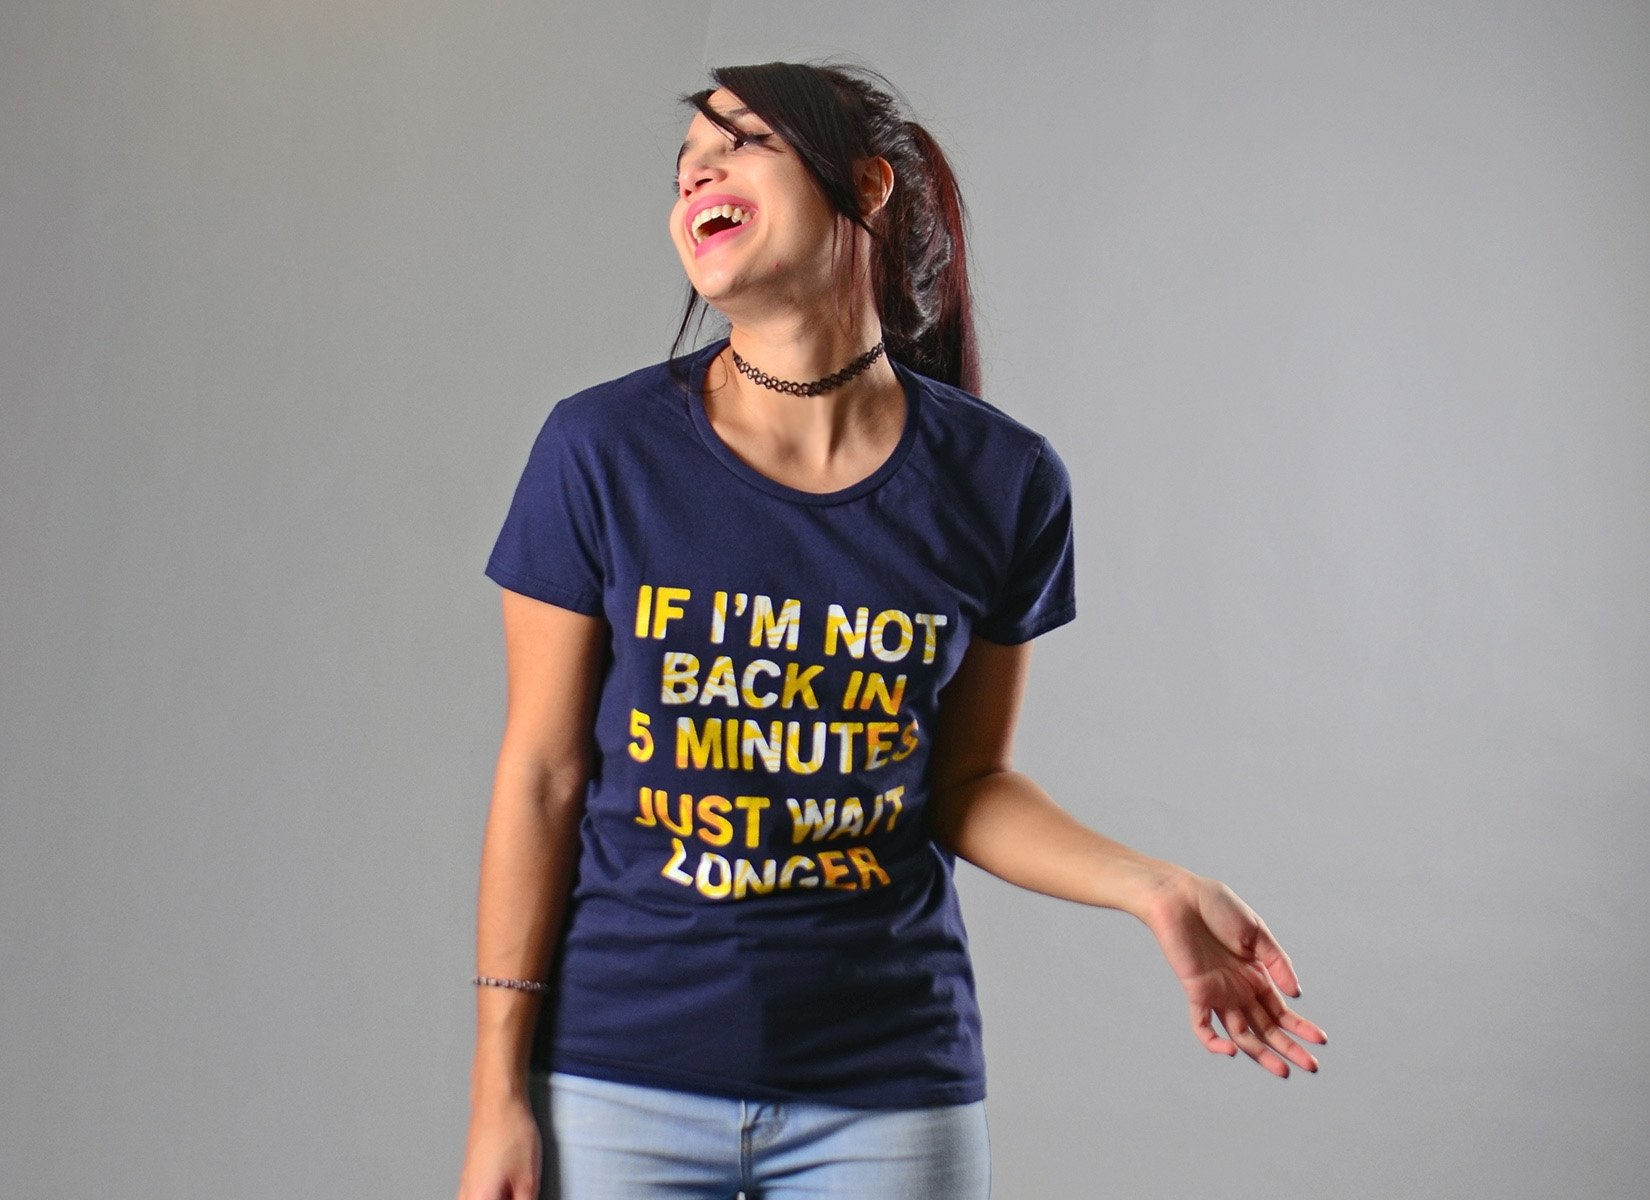 If I'm Not Back In 5 Minutes, Just Wait Longer on Womens T-Shirt